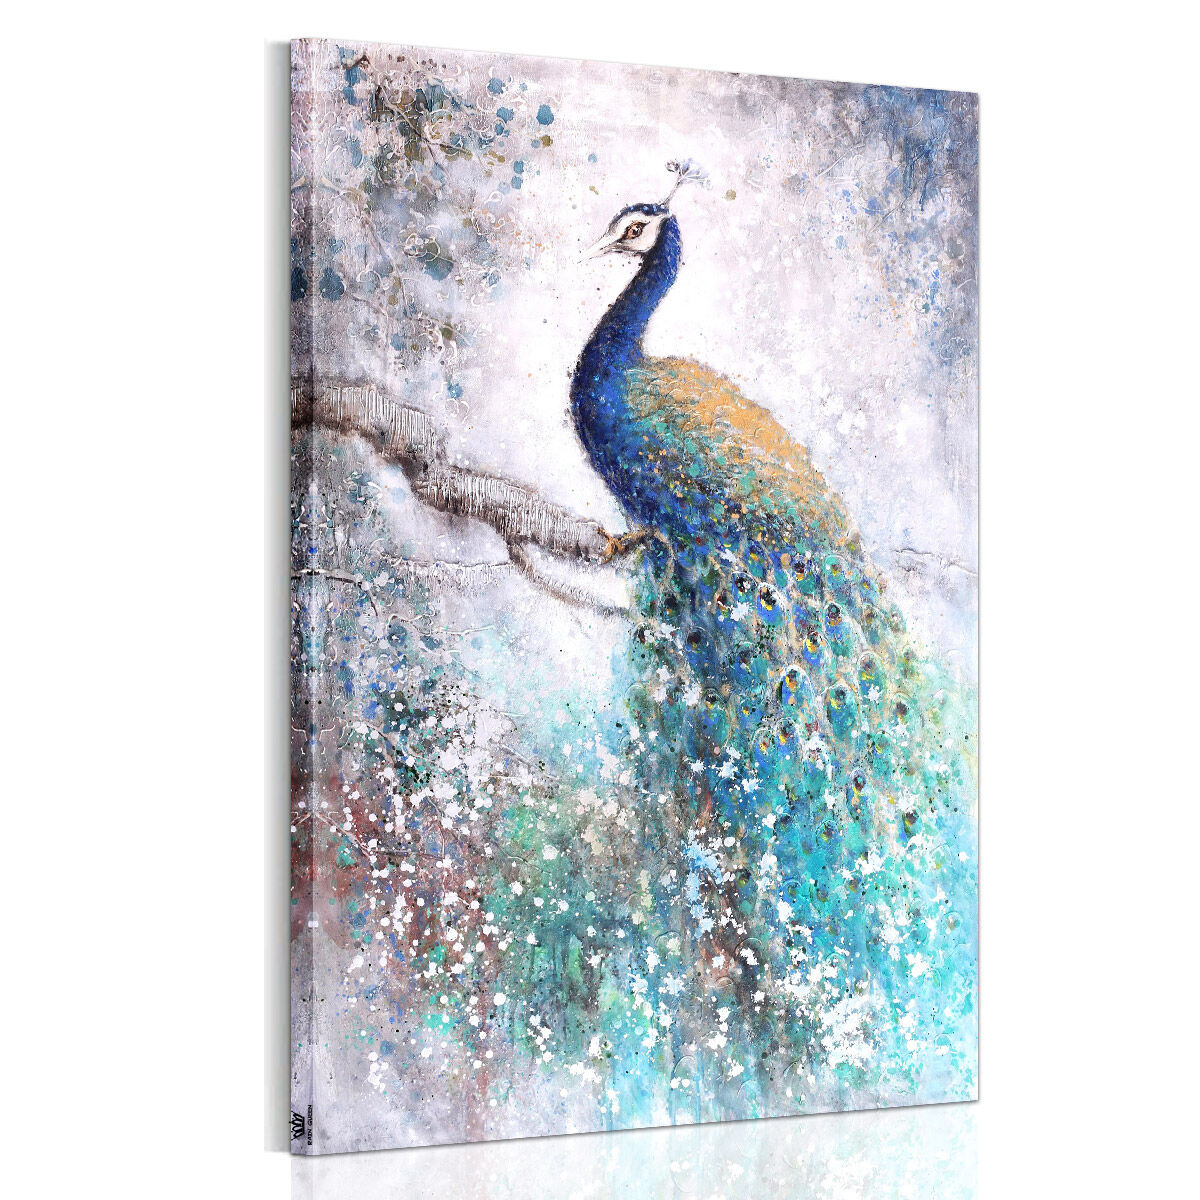 Hd canvas prints home decor wall art painting picture for Wall art painting